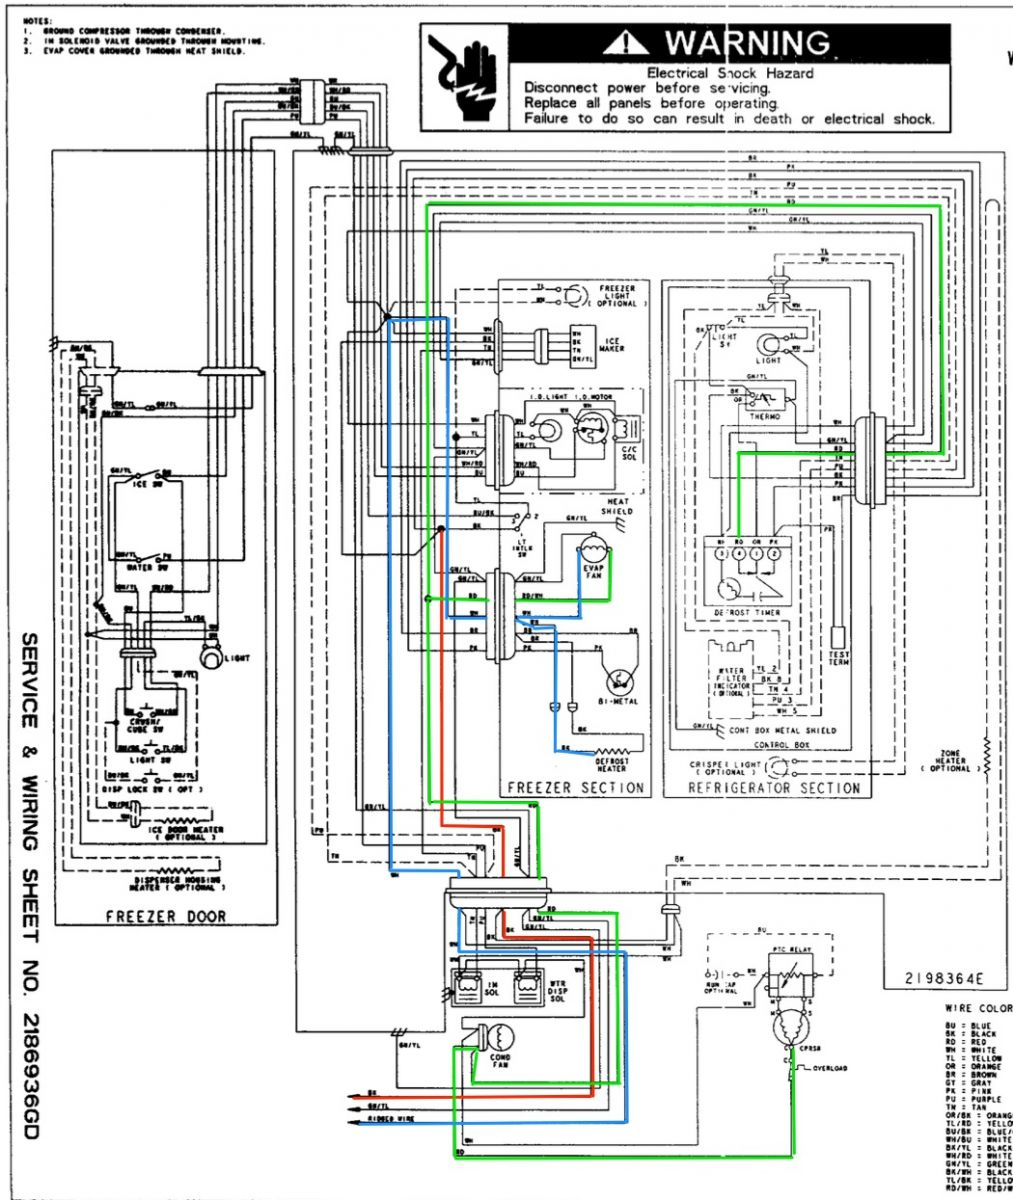 1035 Whirlpool Ed25rfxfw01 Refrigerator Wiring Diagram on whirlpool dishwasher schematic diagram